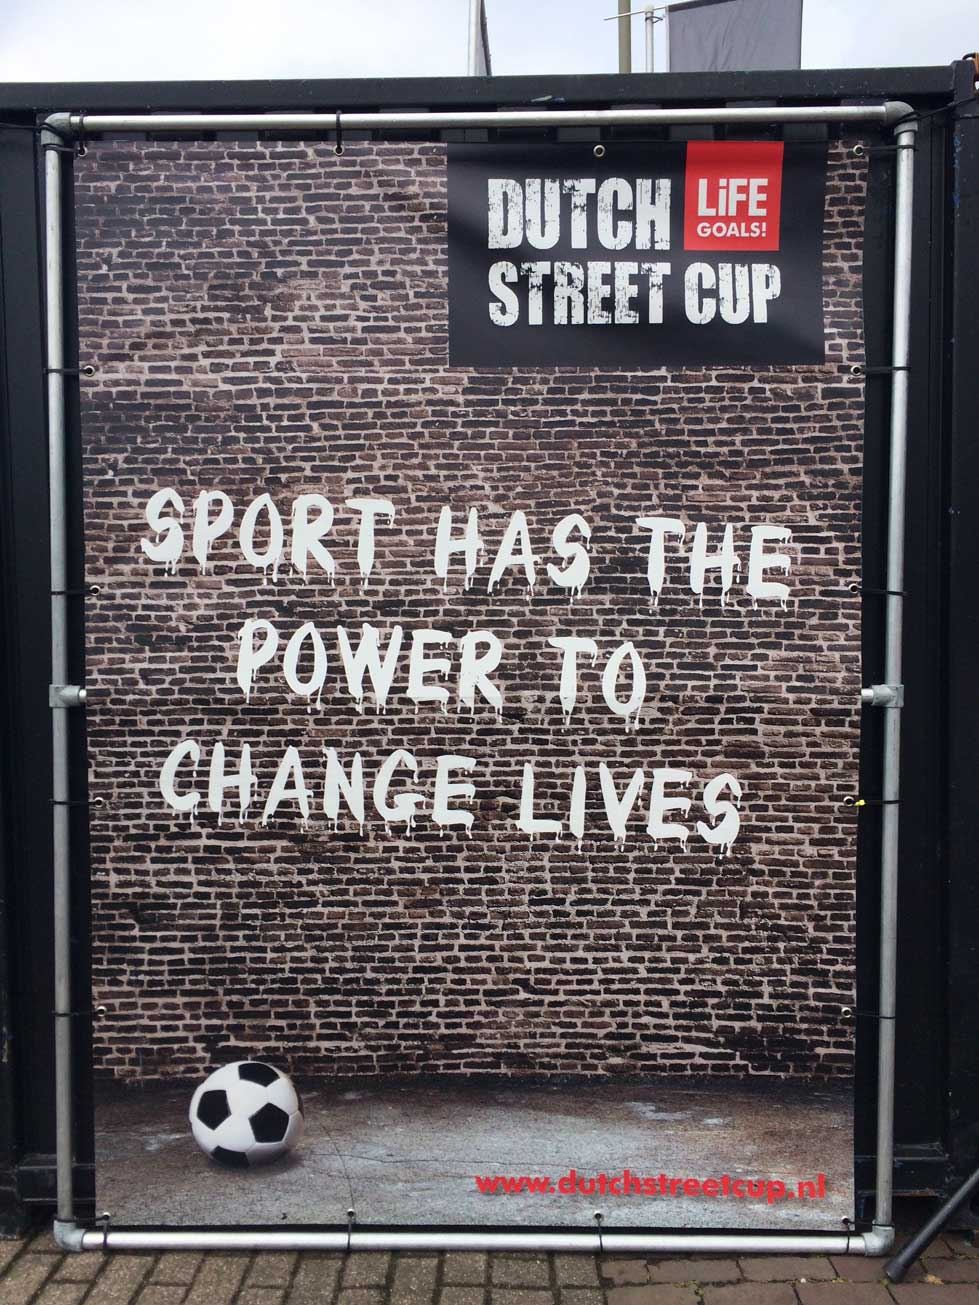 Life-Goals-dutch-street-cup